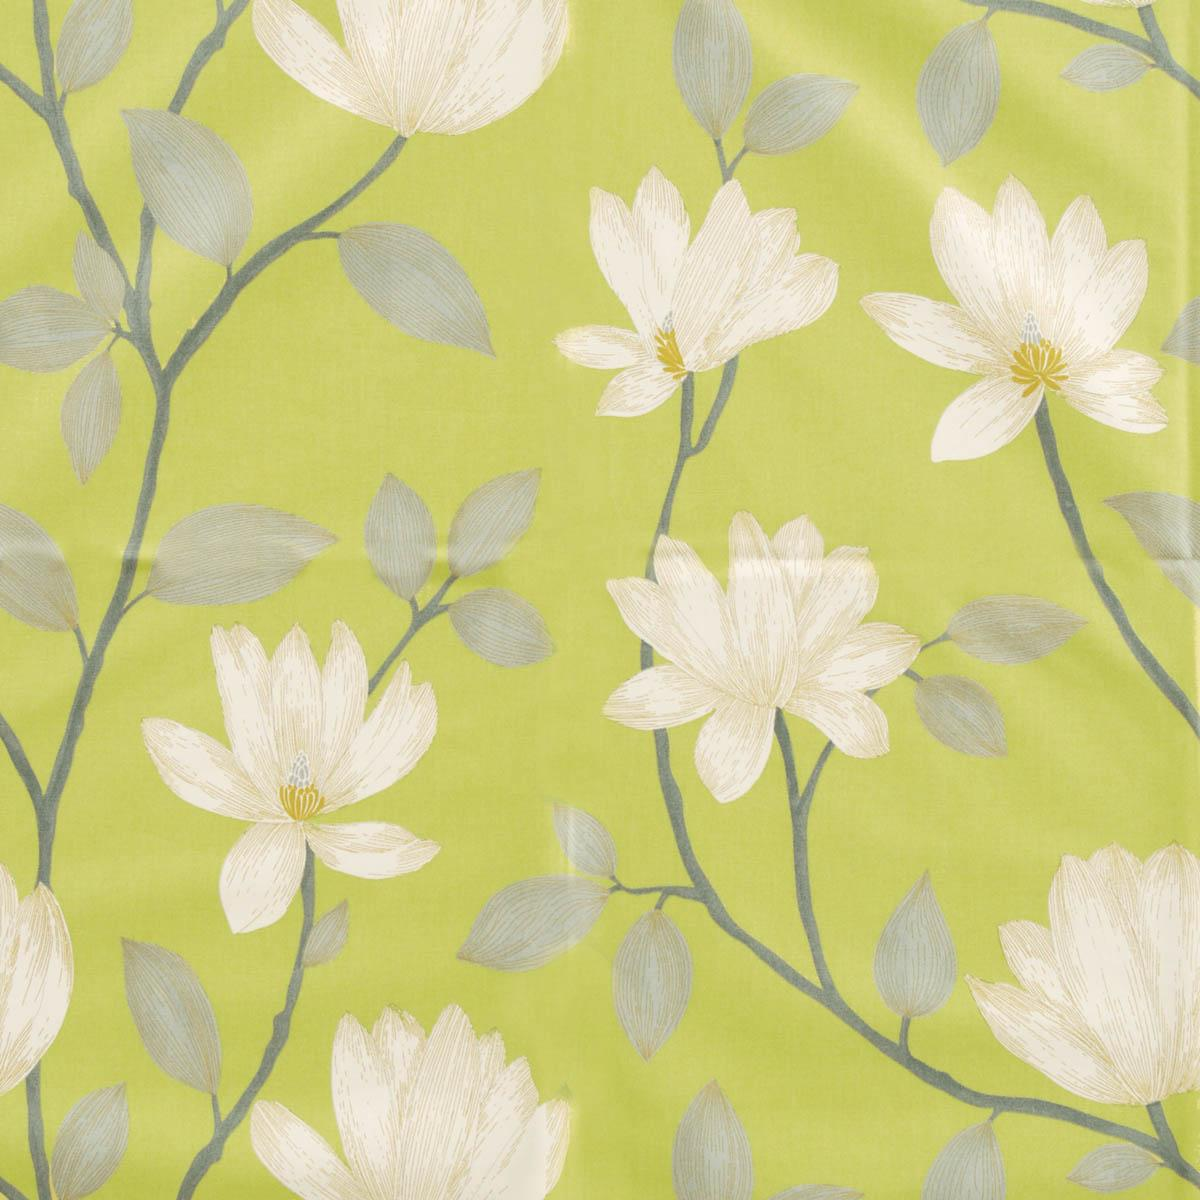 Chartreuse curtain fabric